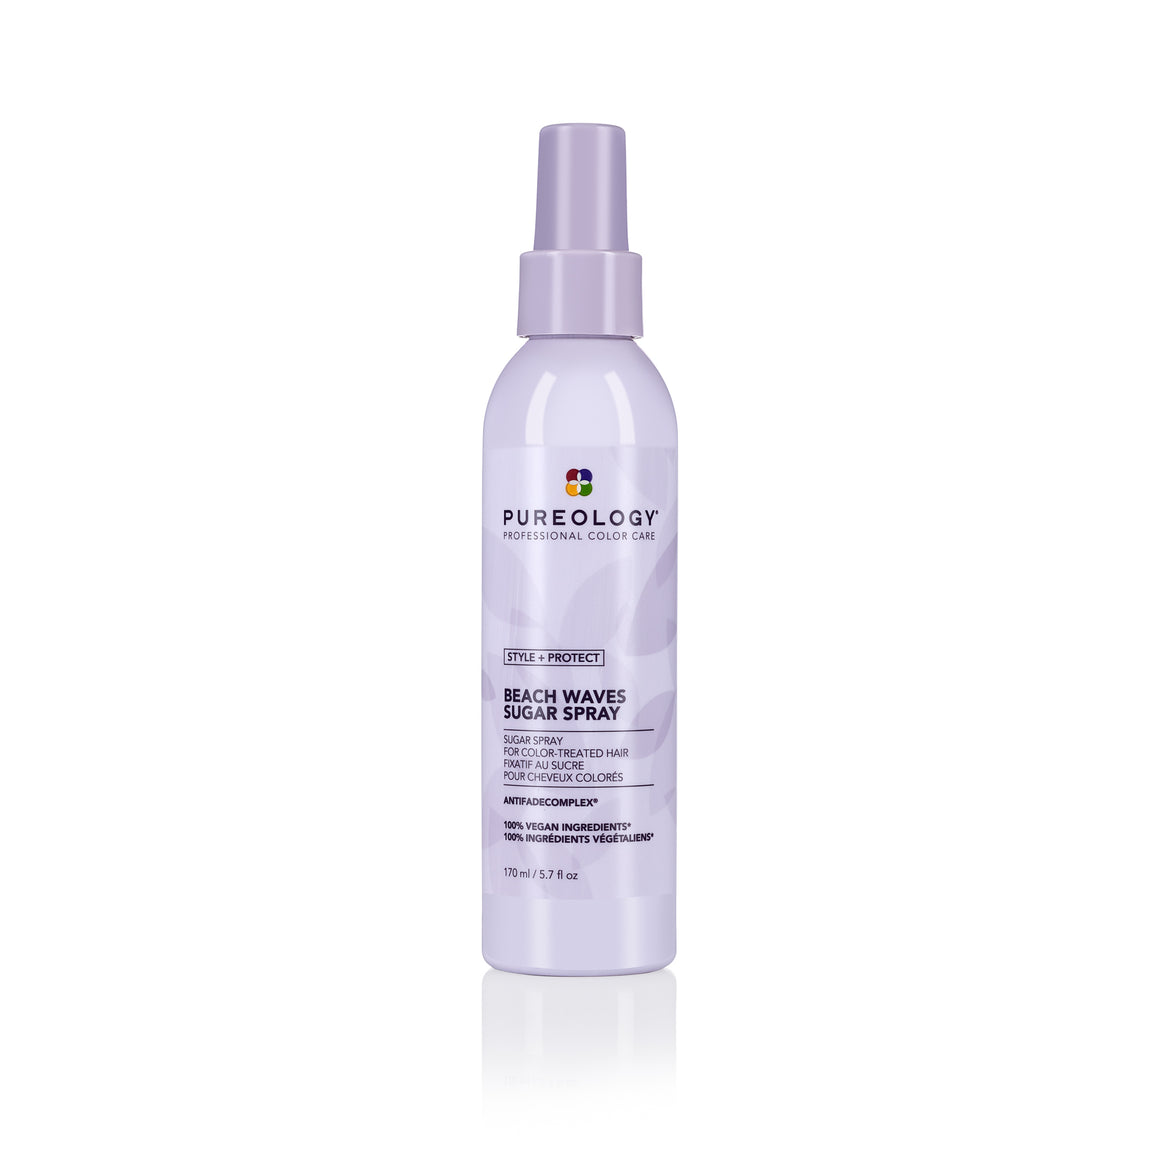 Pureology Beach Waves Sugar Spray 170ml